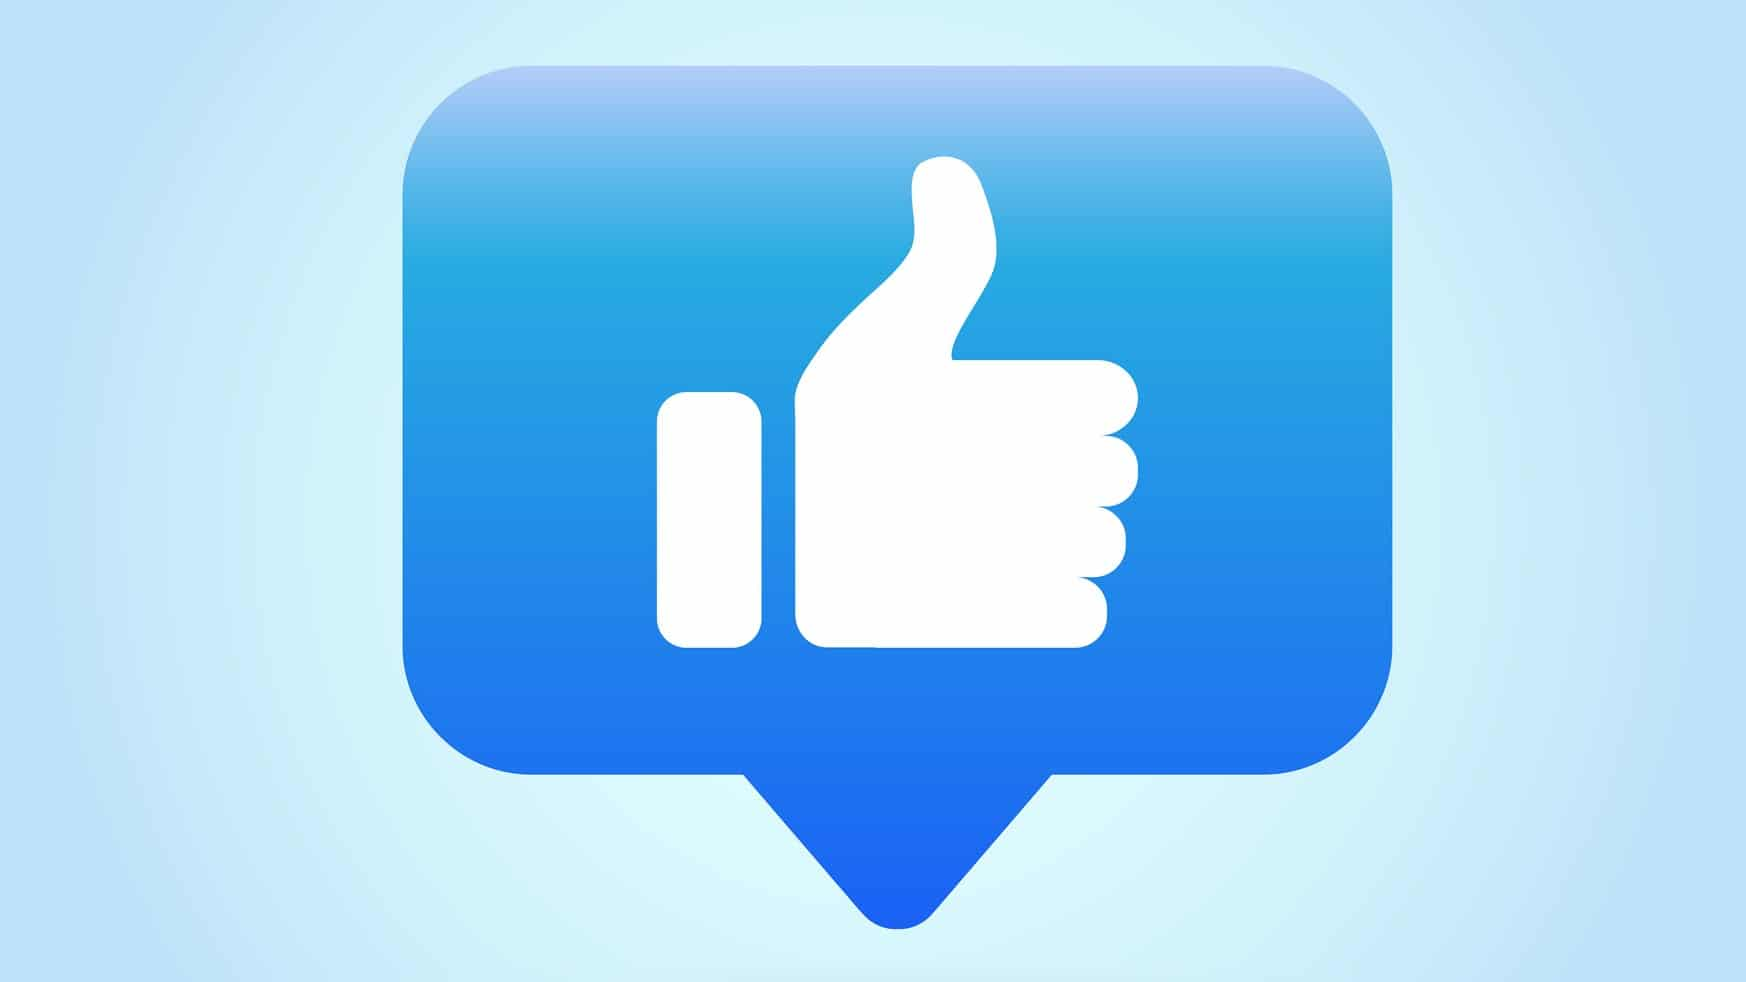 what to like about magellan share price represented by illustration of thumbs up icon inside speech bubble